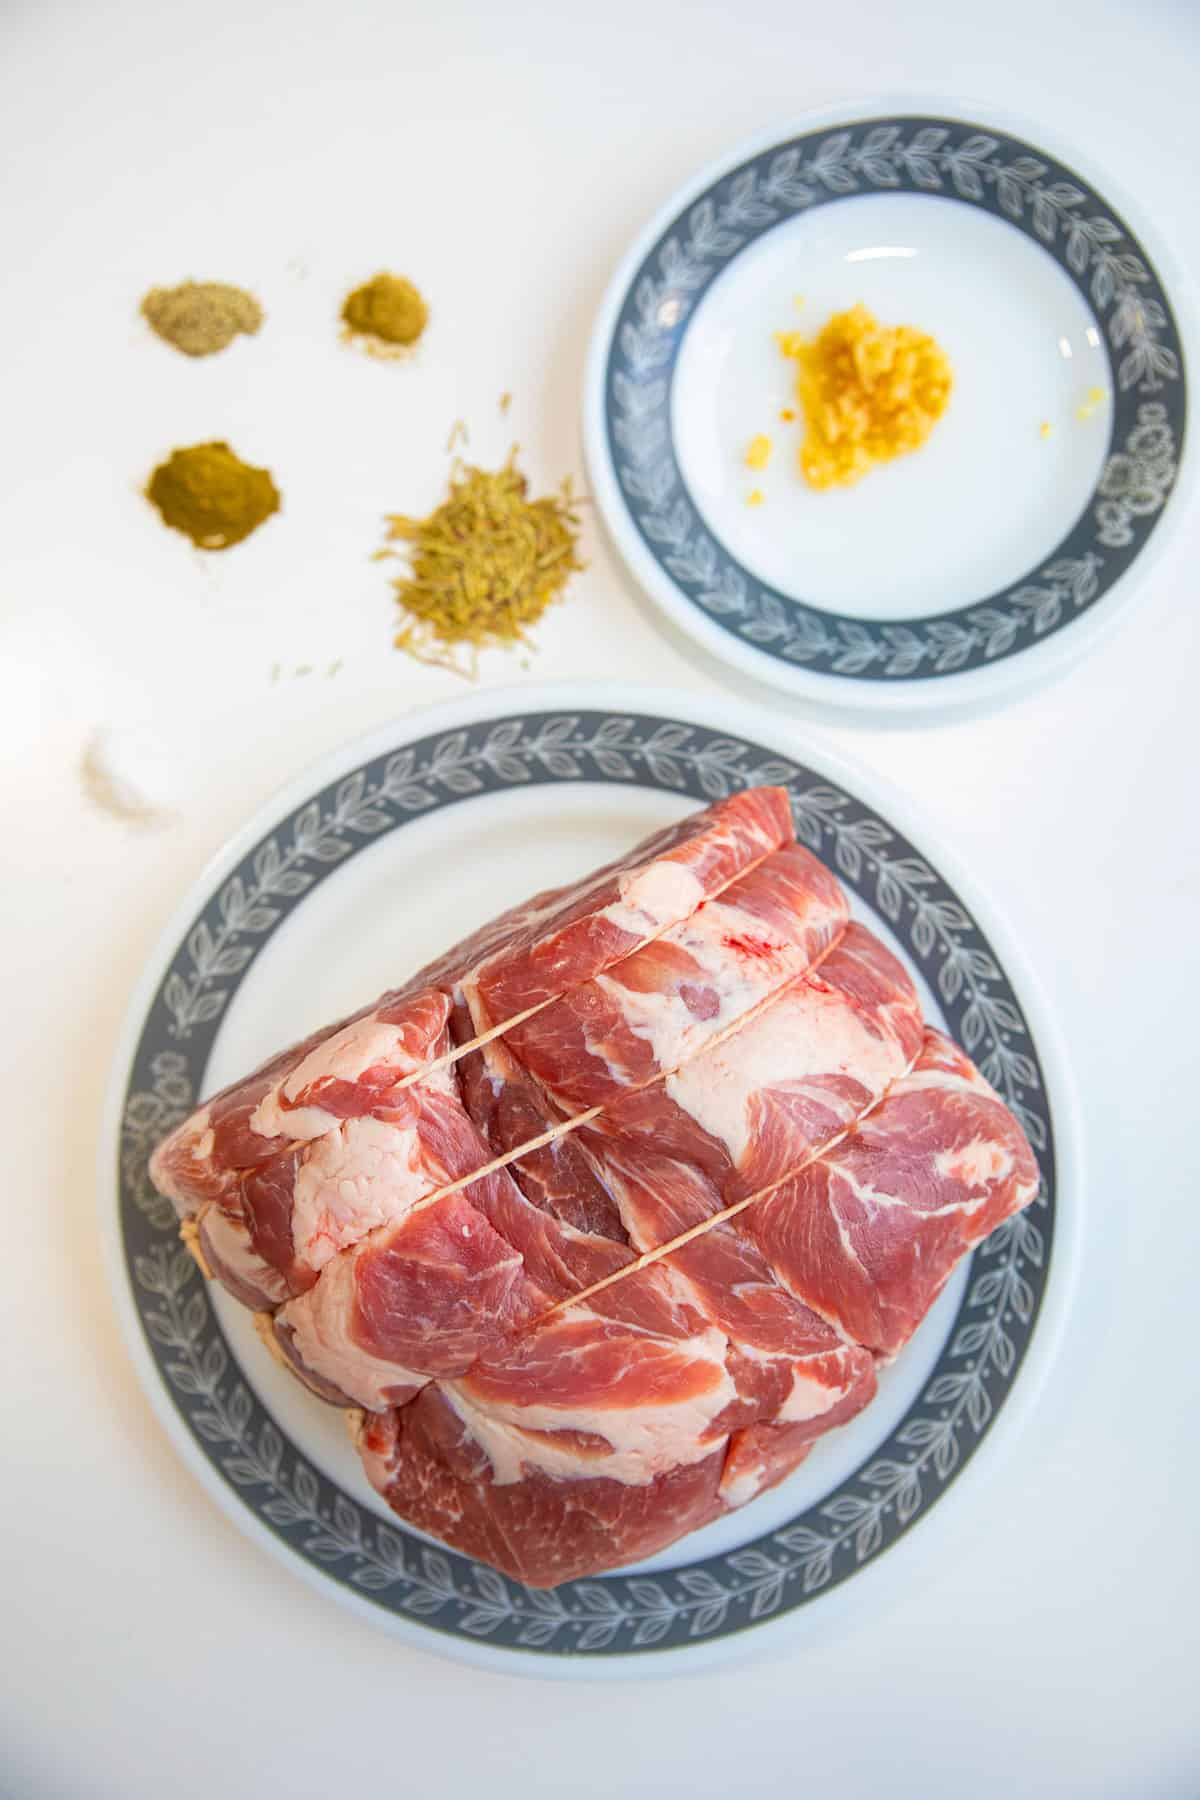 top down shot of a tied up, raw pork shoulder, with the seasoning ingredients nearby